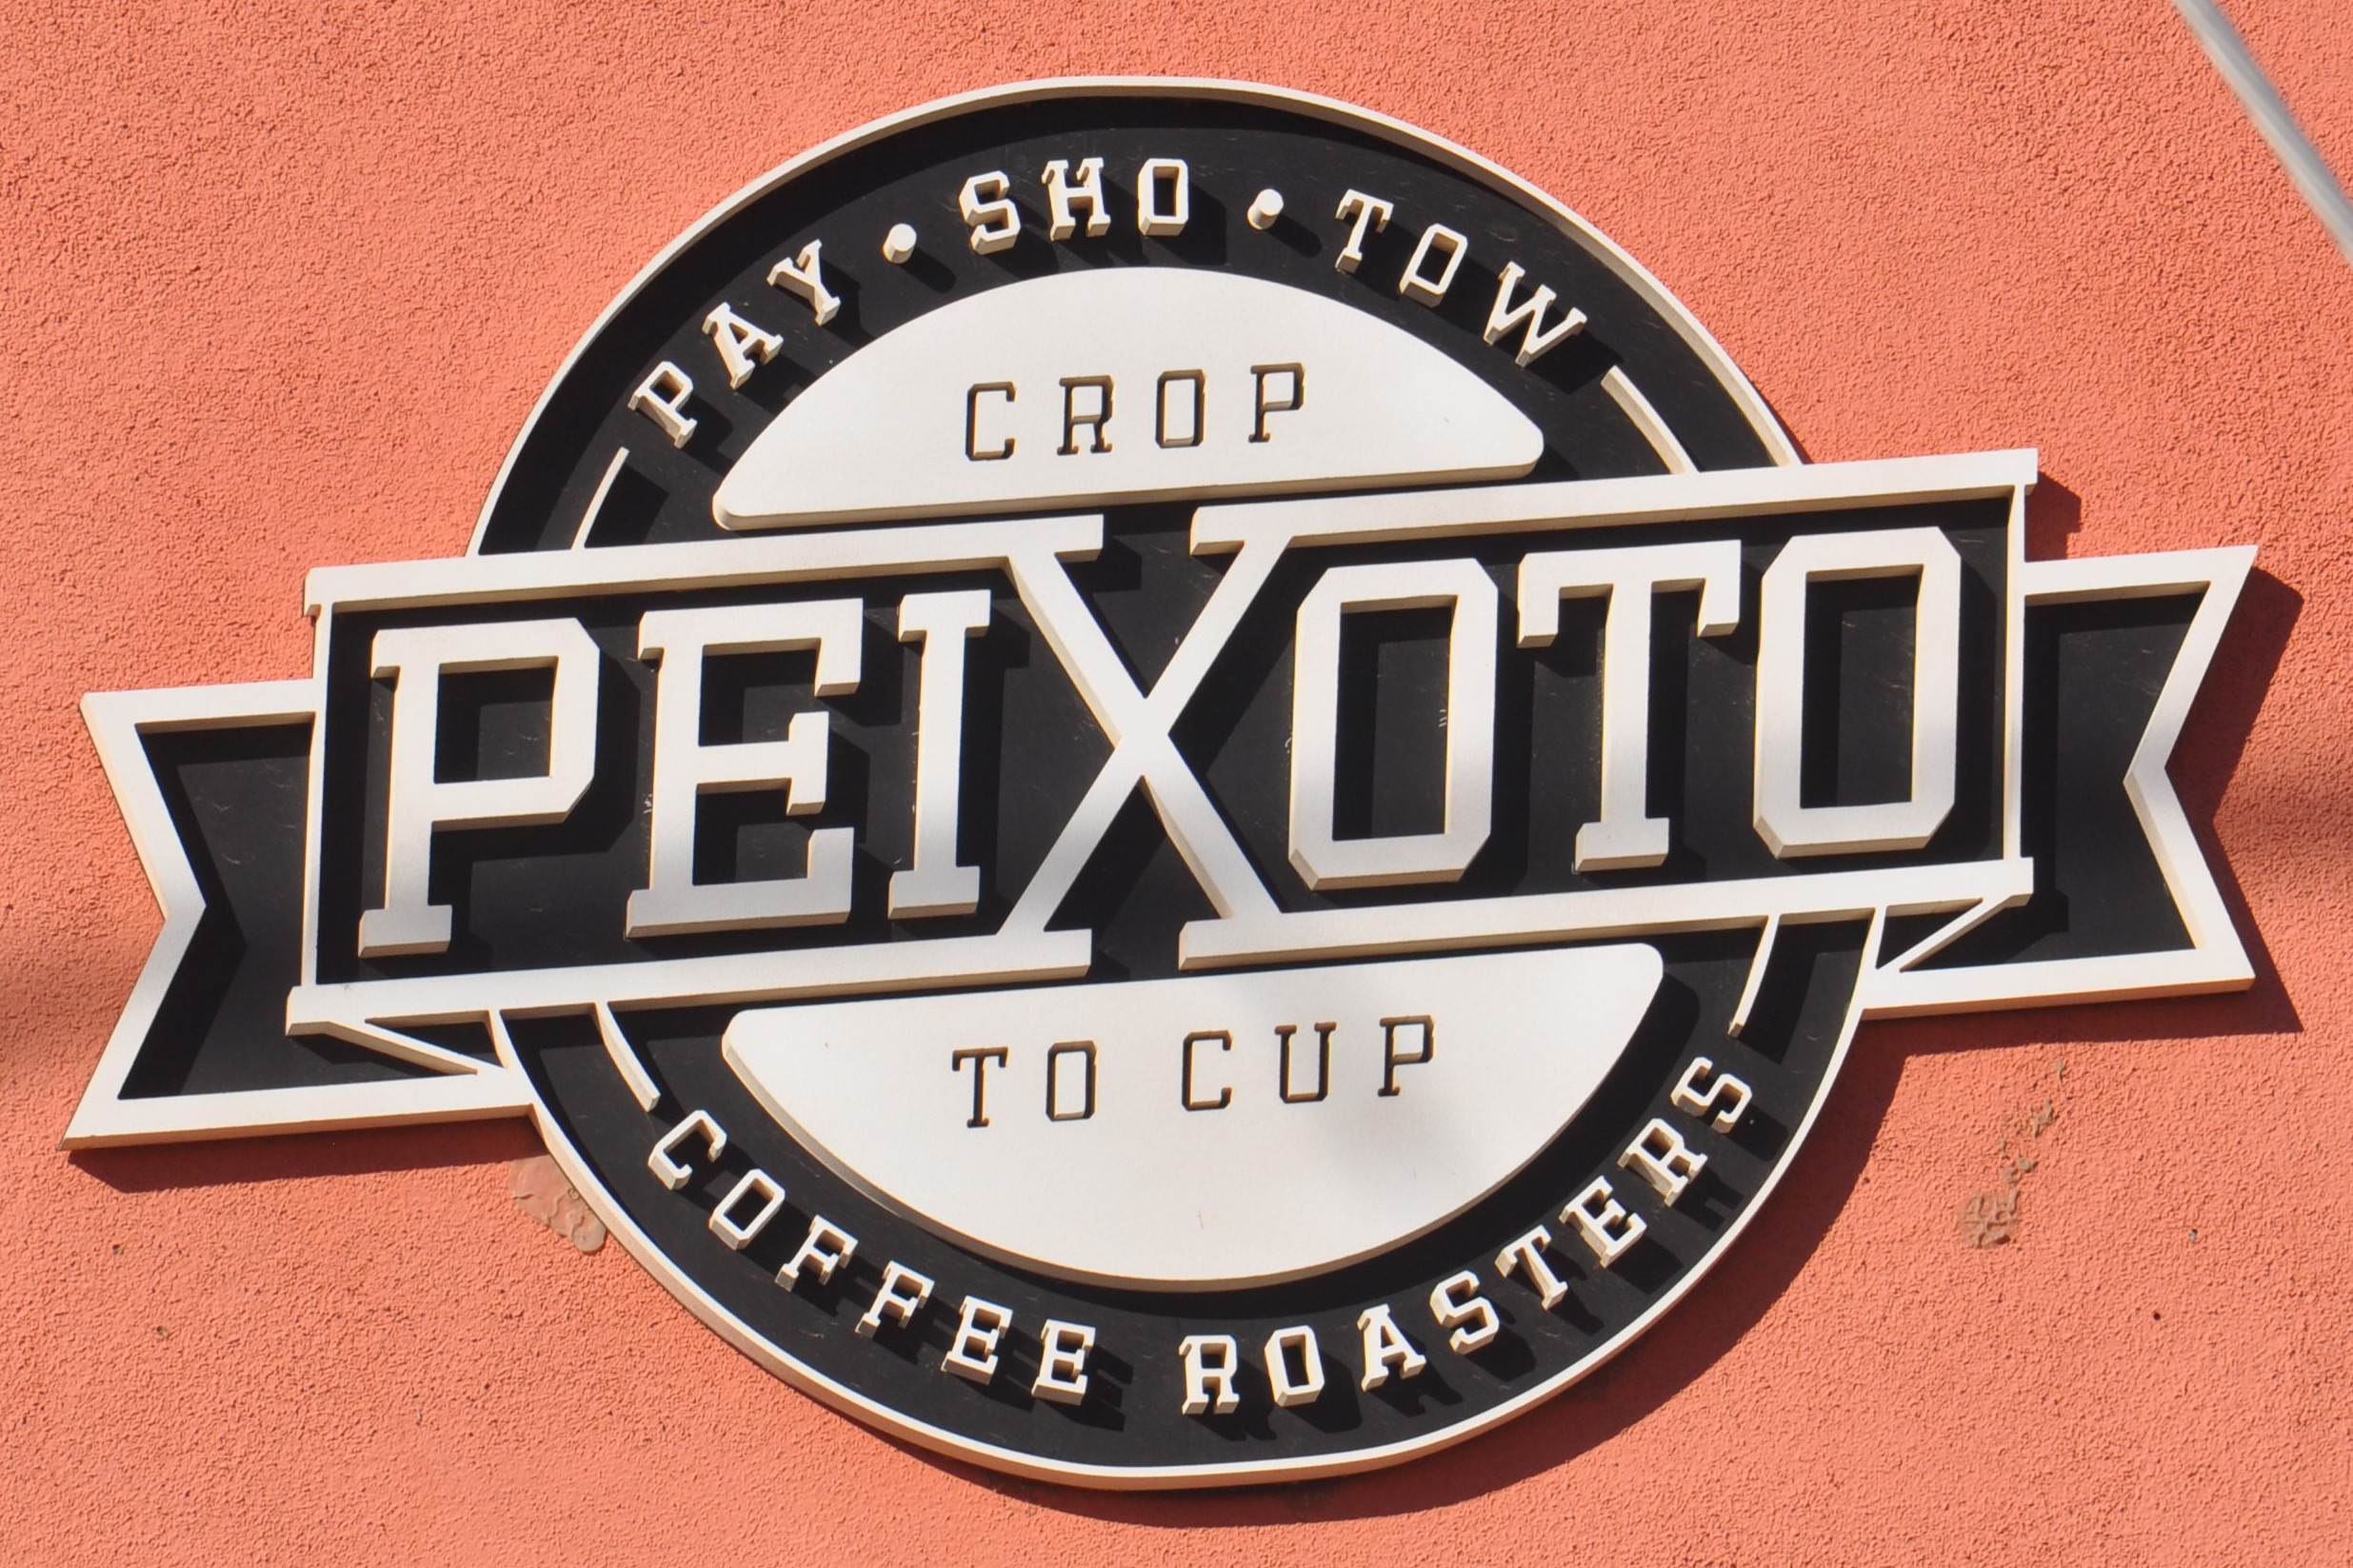 "The Peixoto logo from the wall outside, both esposing the crop to cup philosophy and explaining how to pronouce the name: ""Pay - Sho - Tow""."